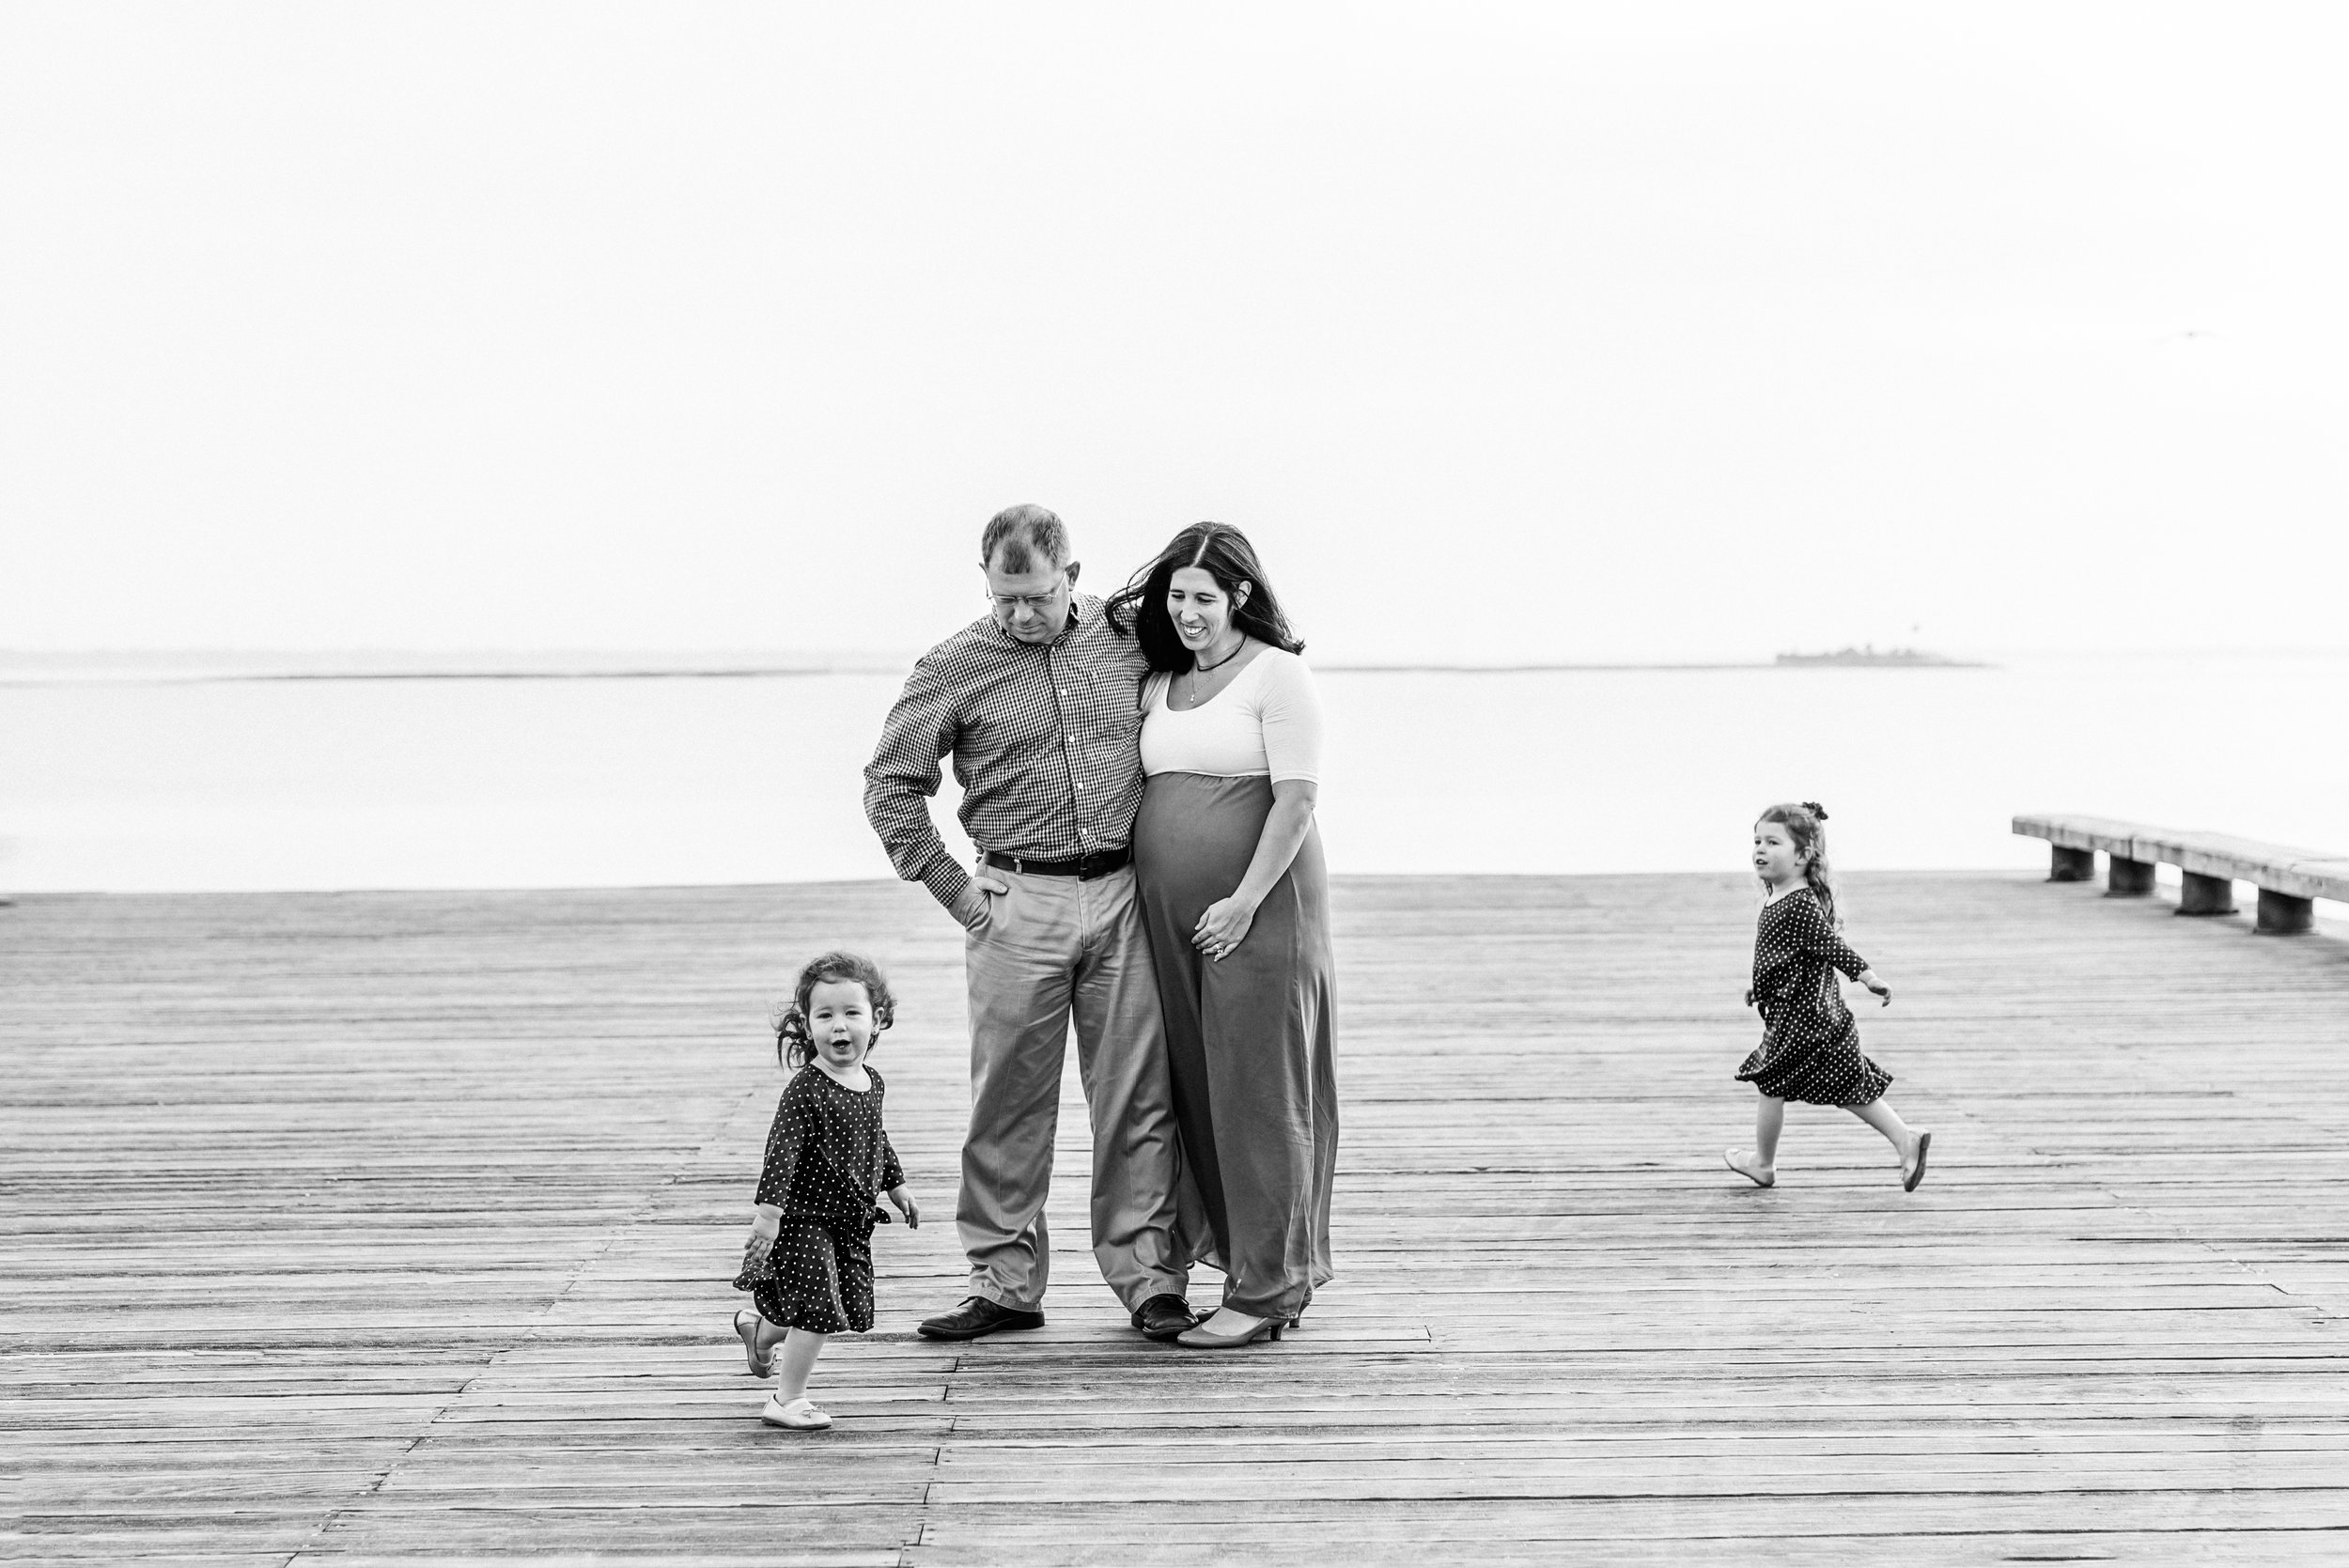 Charleston-Maternity-Photographer-FSP_7487BW copy.jpg